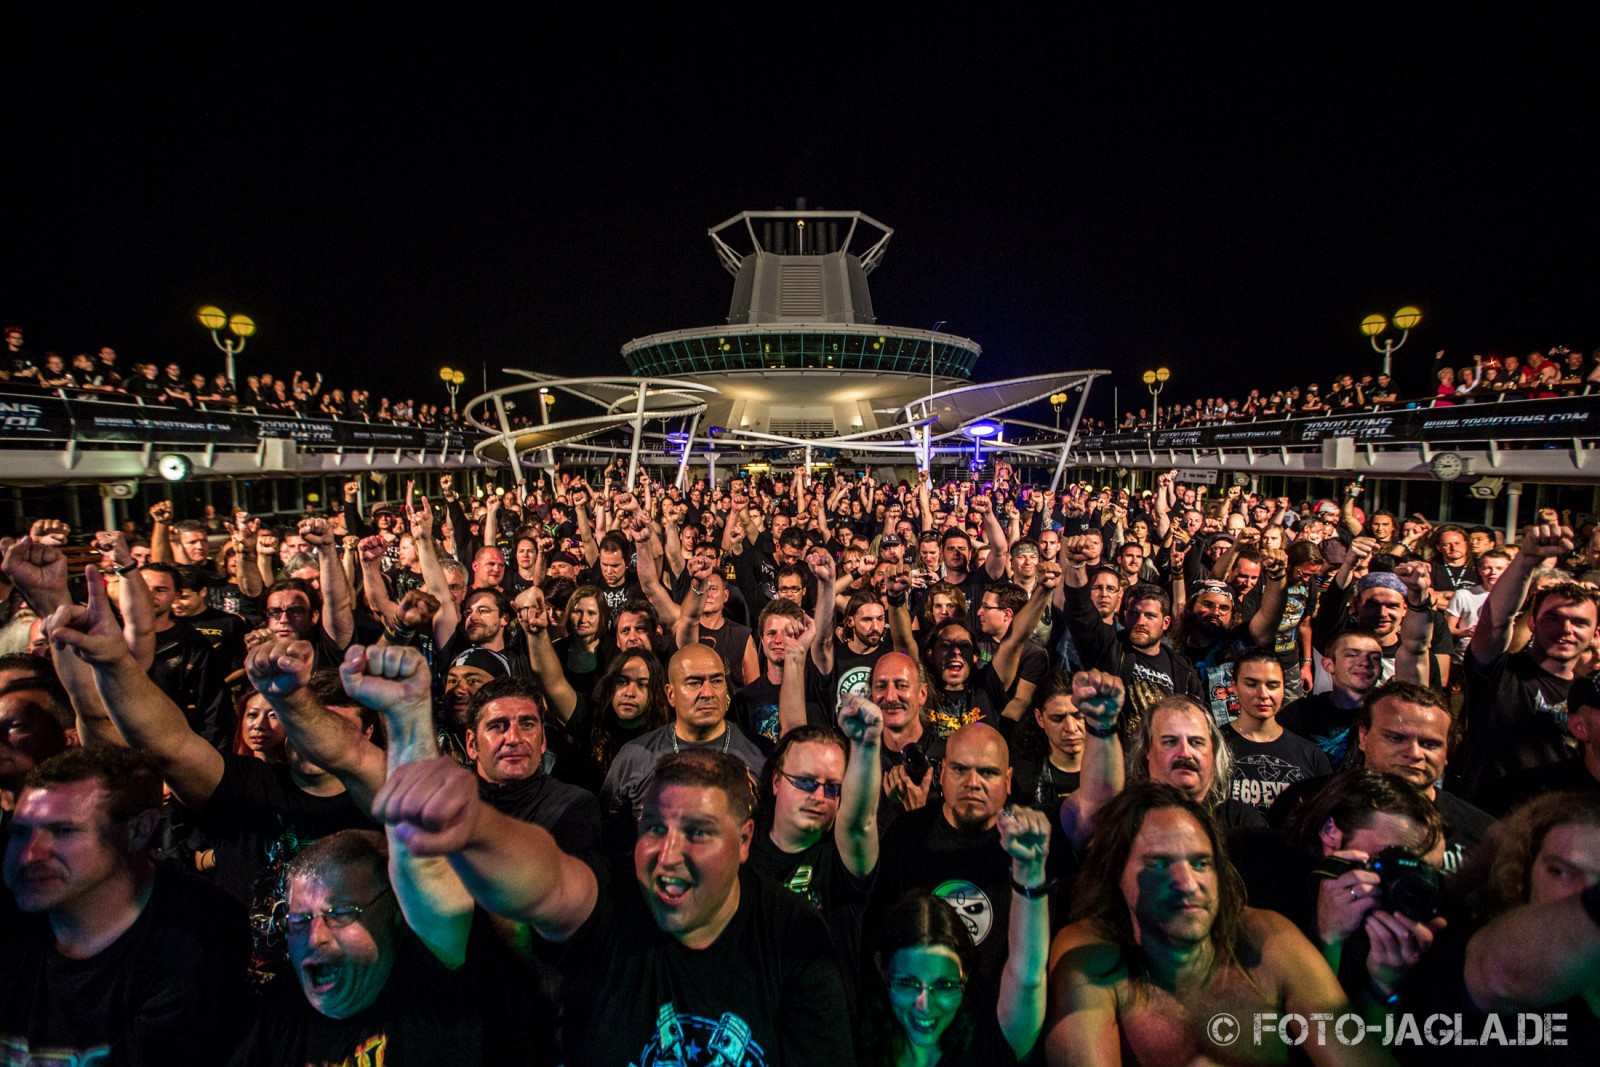 70000 Tons of Metal 2013 ::. Crowd @ Doro ::. http://www.foto-jagla.de